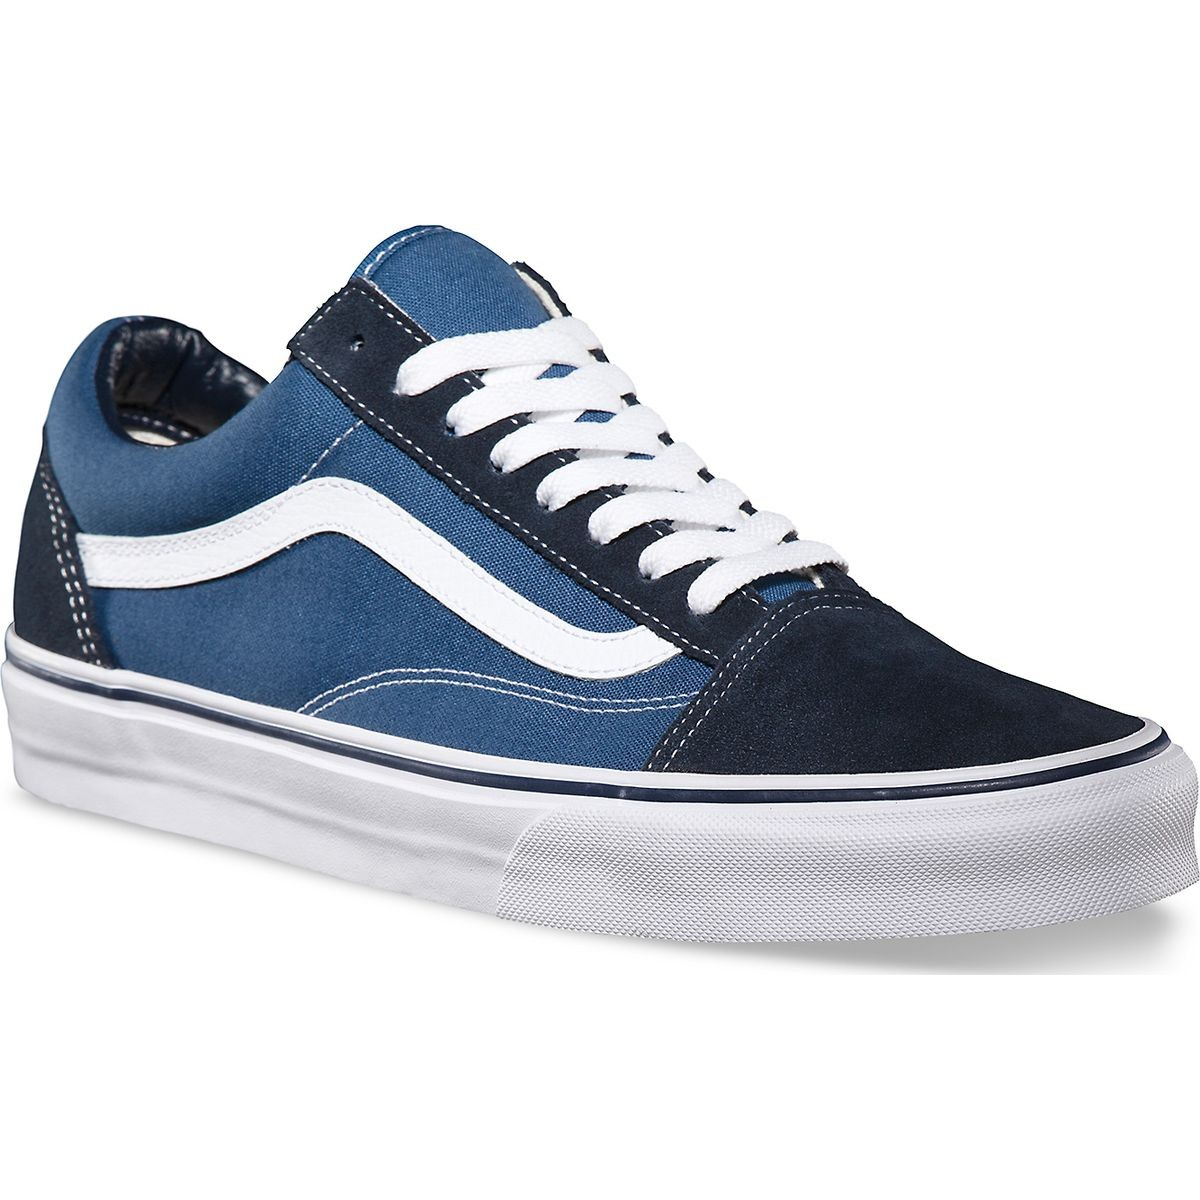 Vans Old Skool Core Classic Shoes - Navy